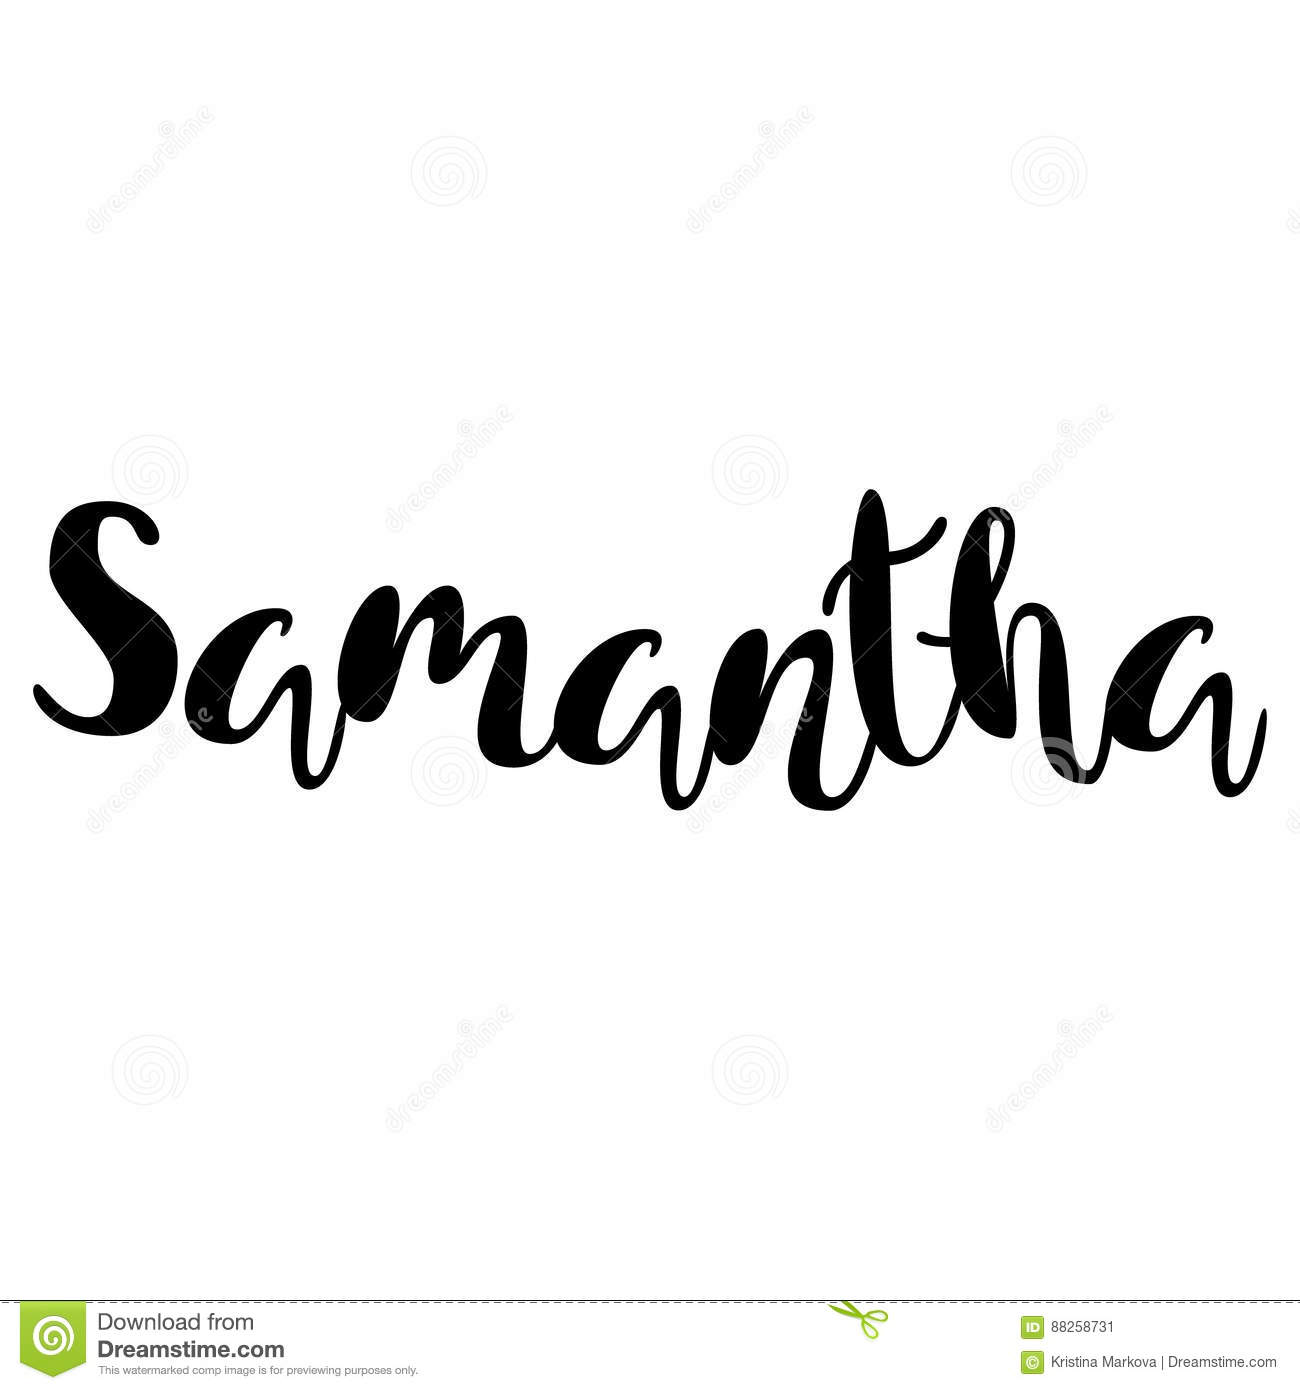 1eb42496b077 Female name - Samantha. Handwritten Lettering. Black. Modern Calligraphy.  More similar stock illustrations